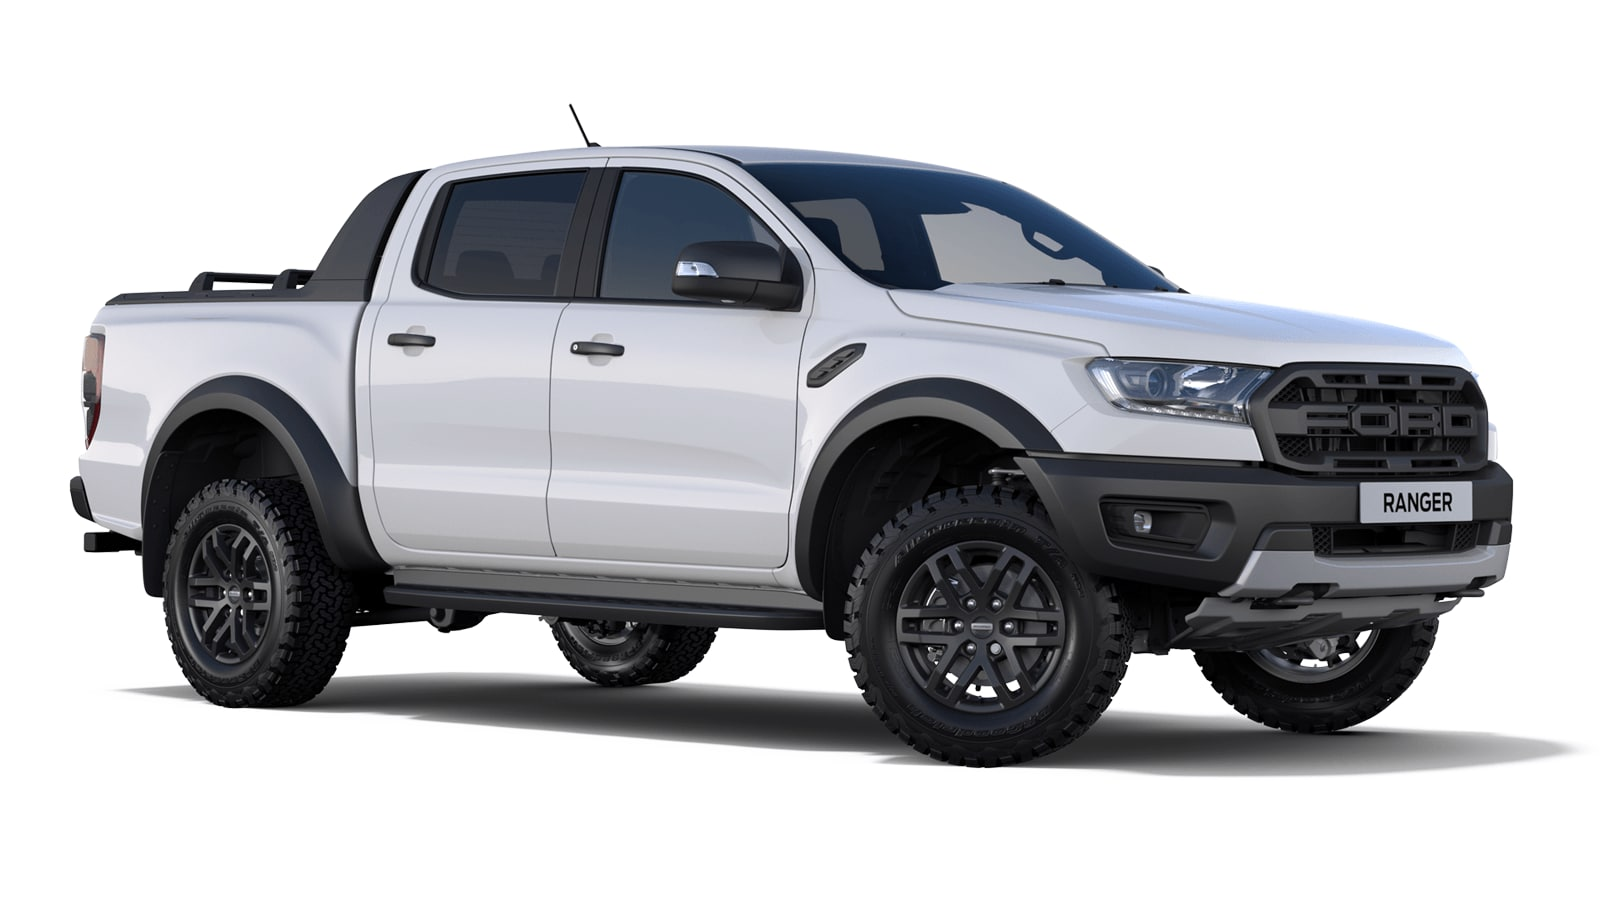 https://www.dealerinternet.co.uk/images/RANGER/2019.5/Double%20Cab/Raptor/FROZEN-WHITE.png